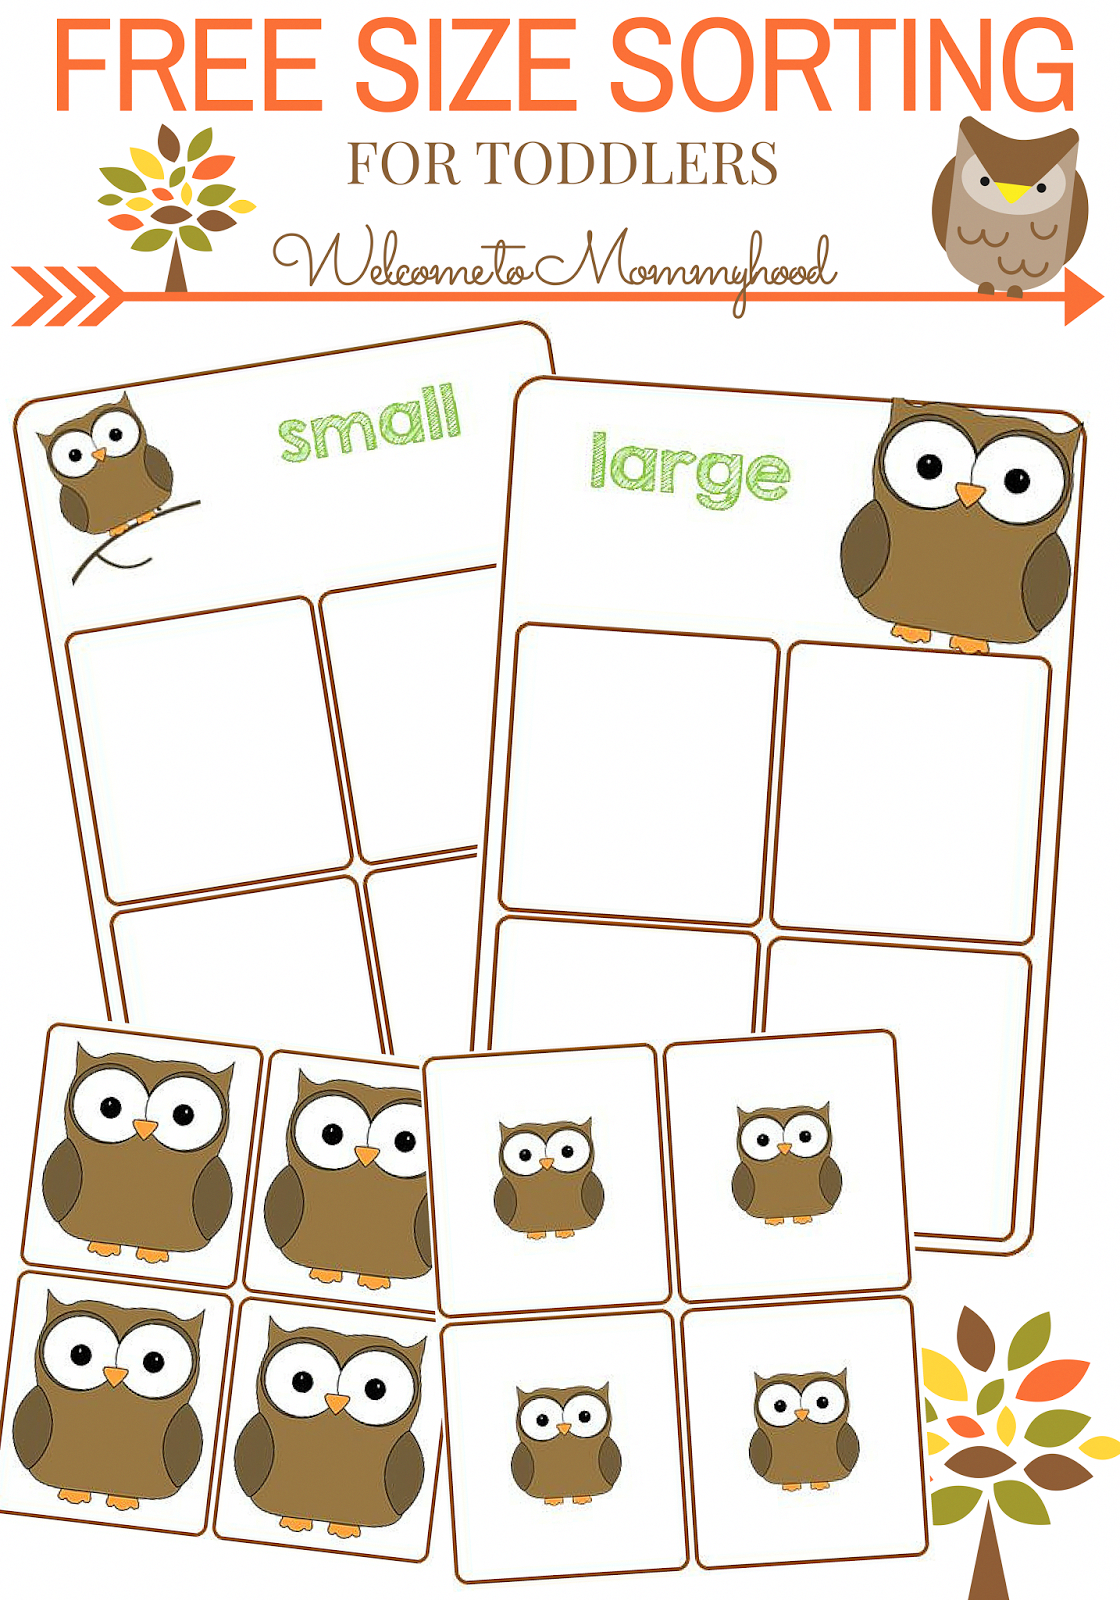 Free Size Sorting Printable For Toddlers By Welcome To Mommyhood Premath Toddleractivities Montessor Preschool Activities Owl Preschool Toddler Activities [ 1600 x 1120 Pixel ]